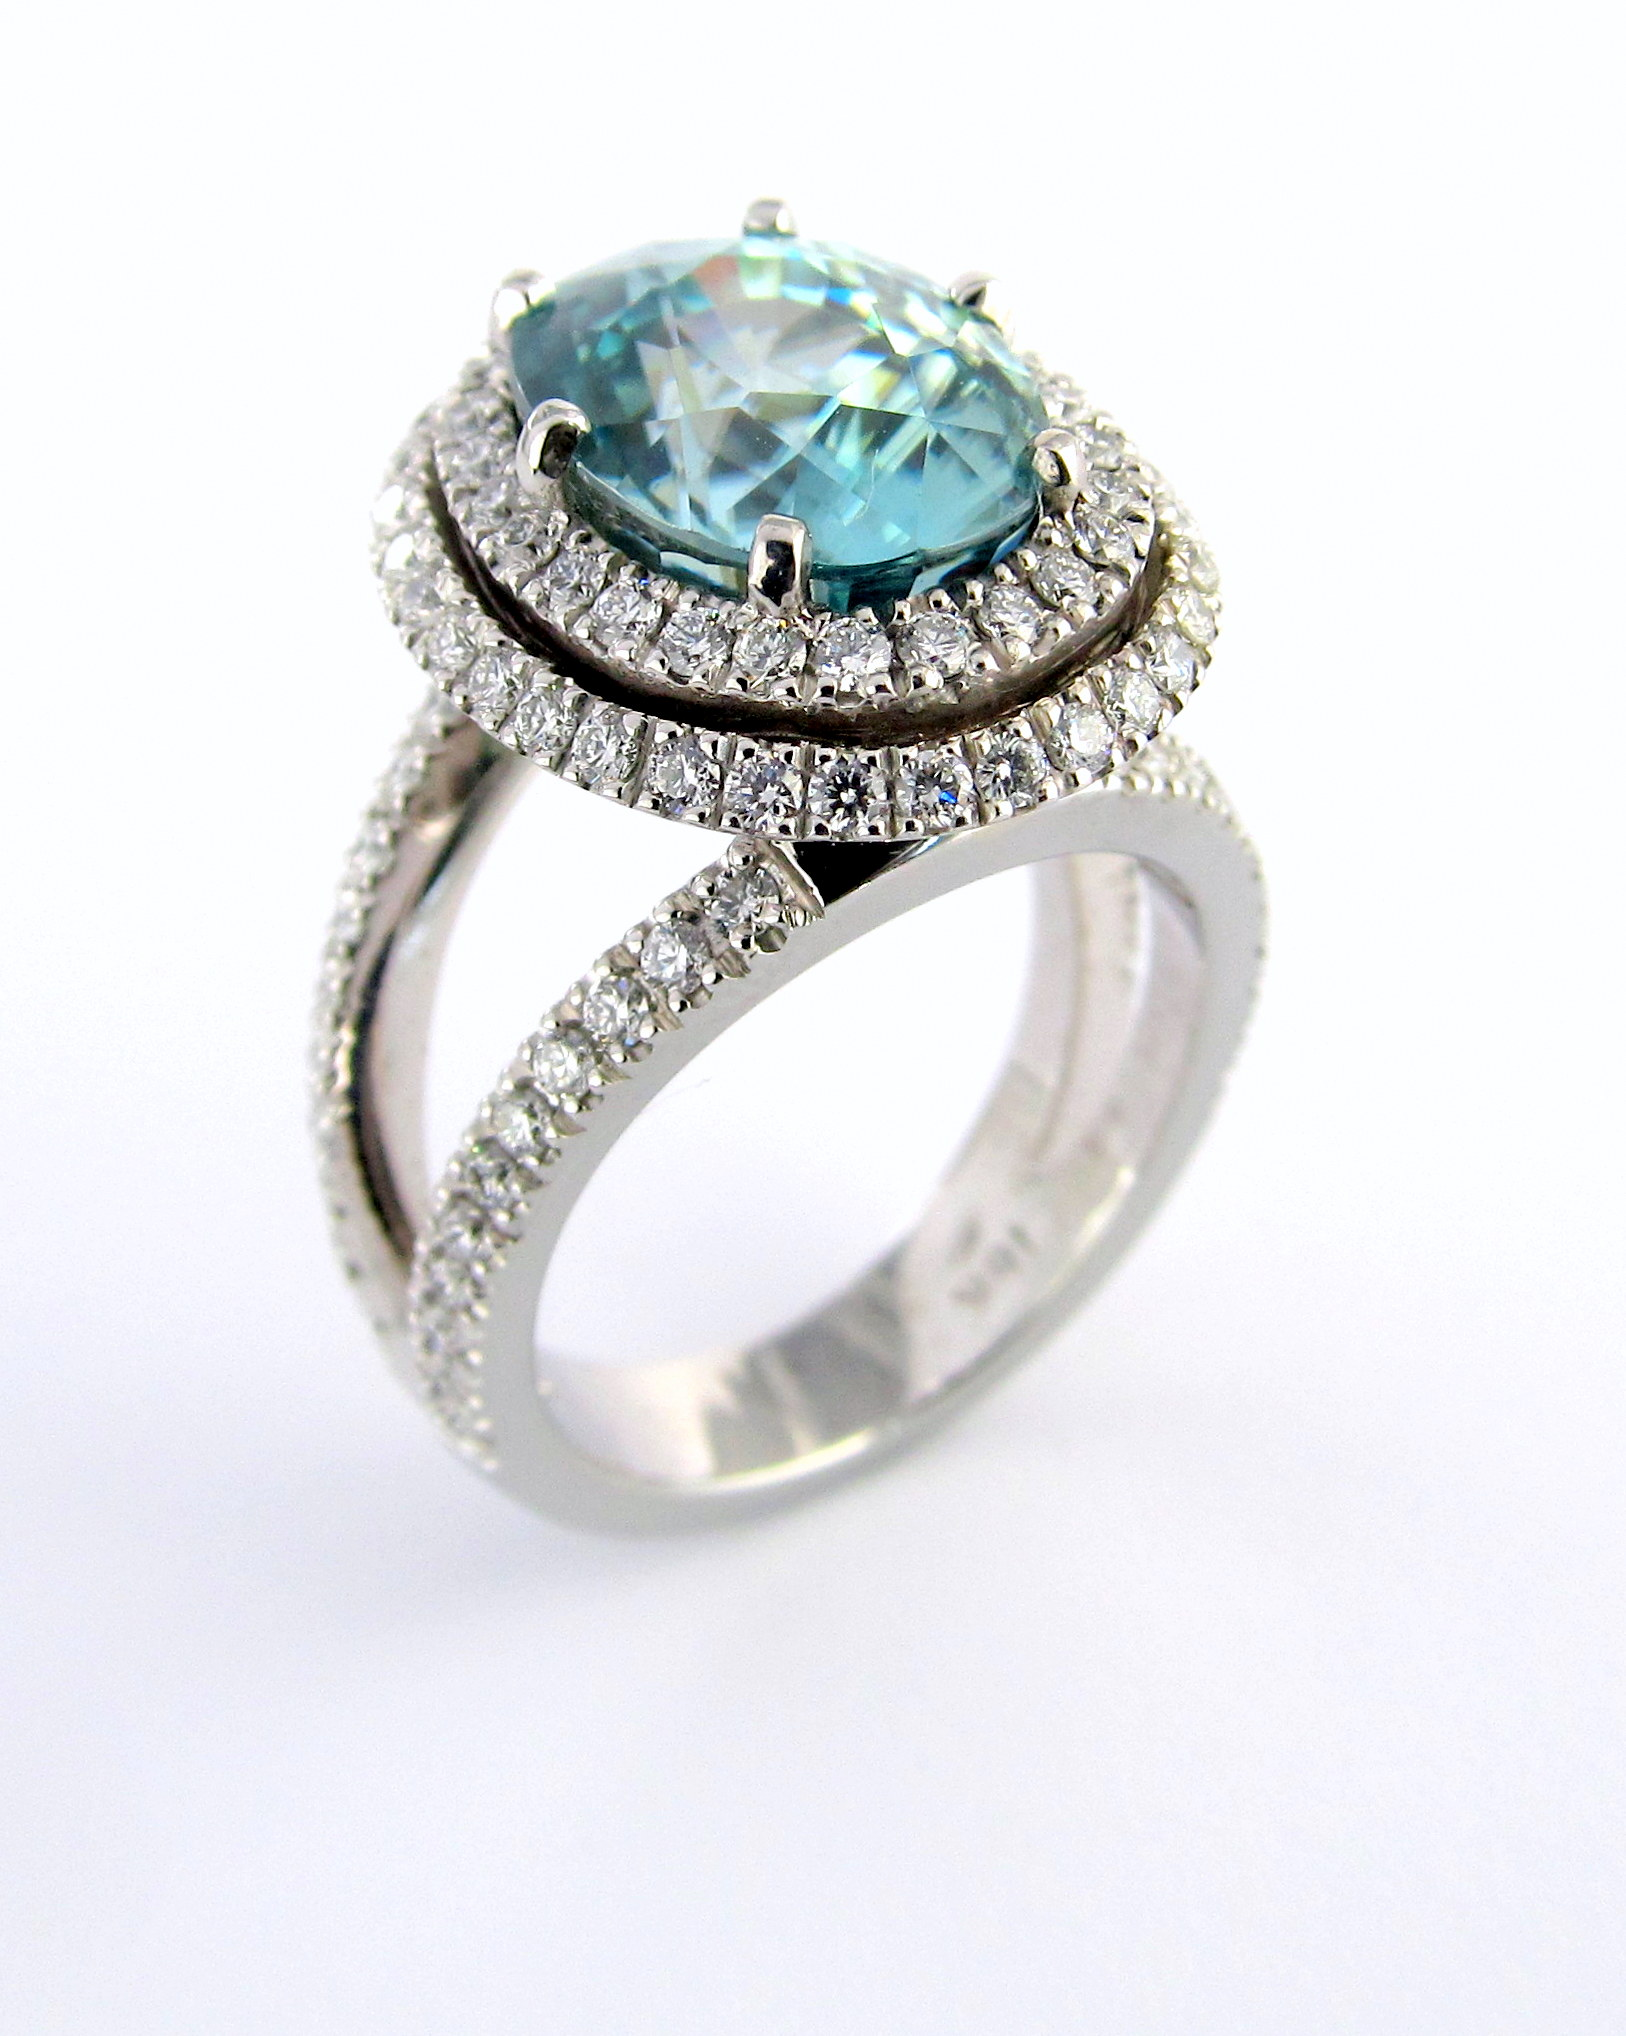 stone ring portal and healing aquamarine gemstones mystical of powers blue rings the information sapphire jewellery